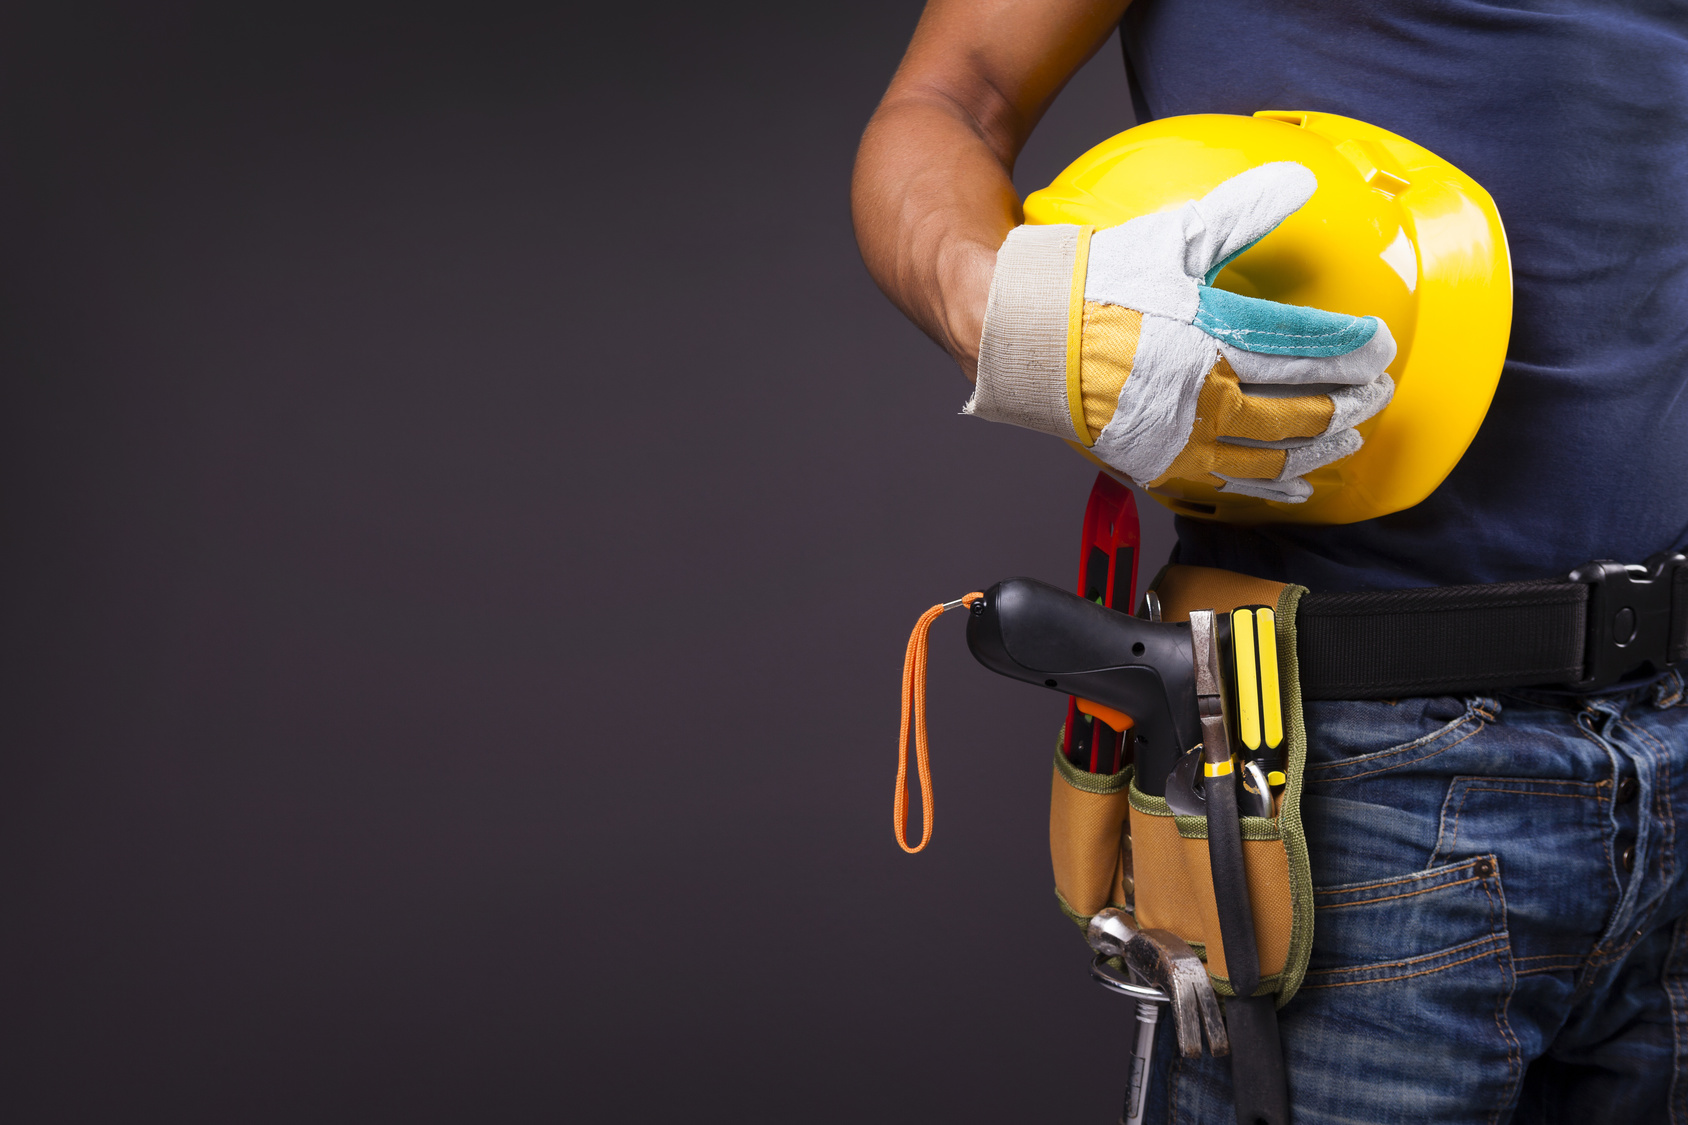 Up-close view of a man's utility belt and hardhat in his hands.